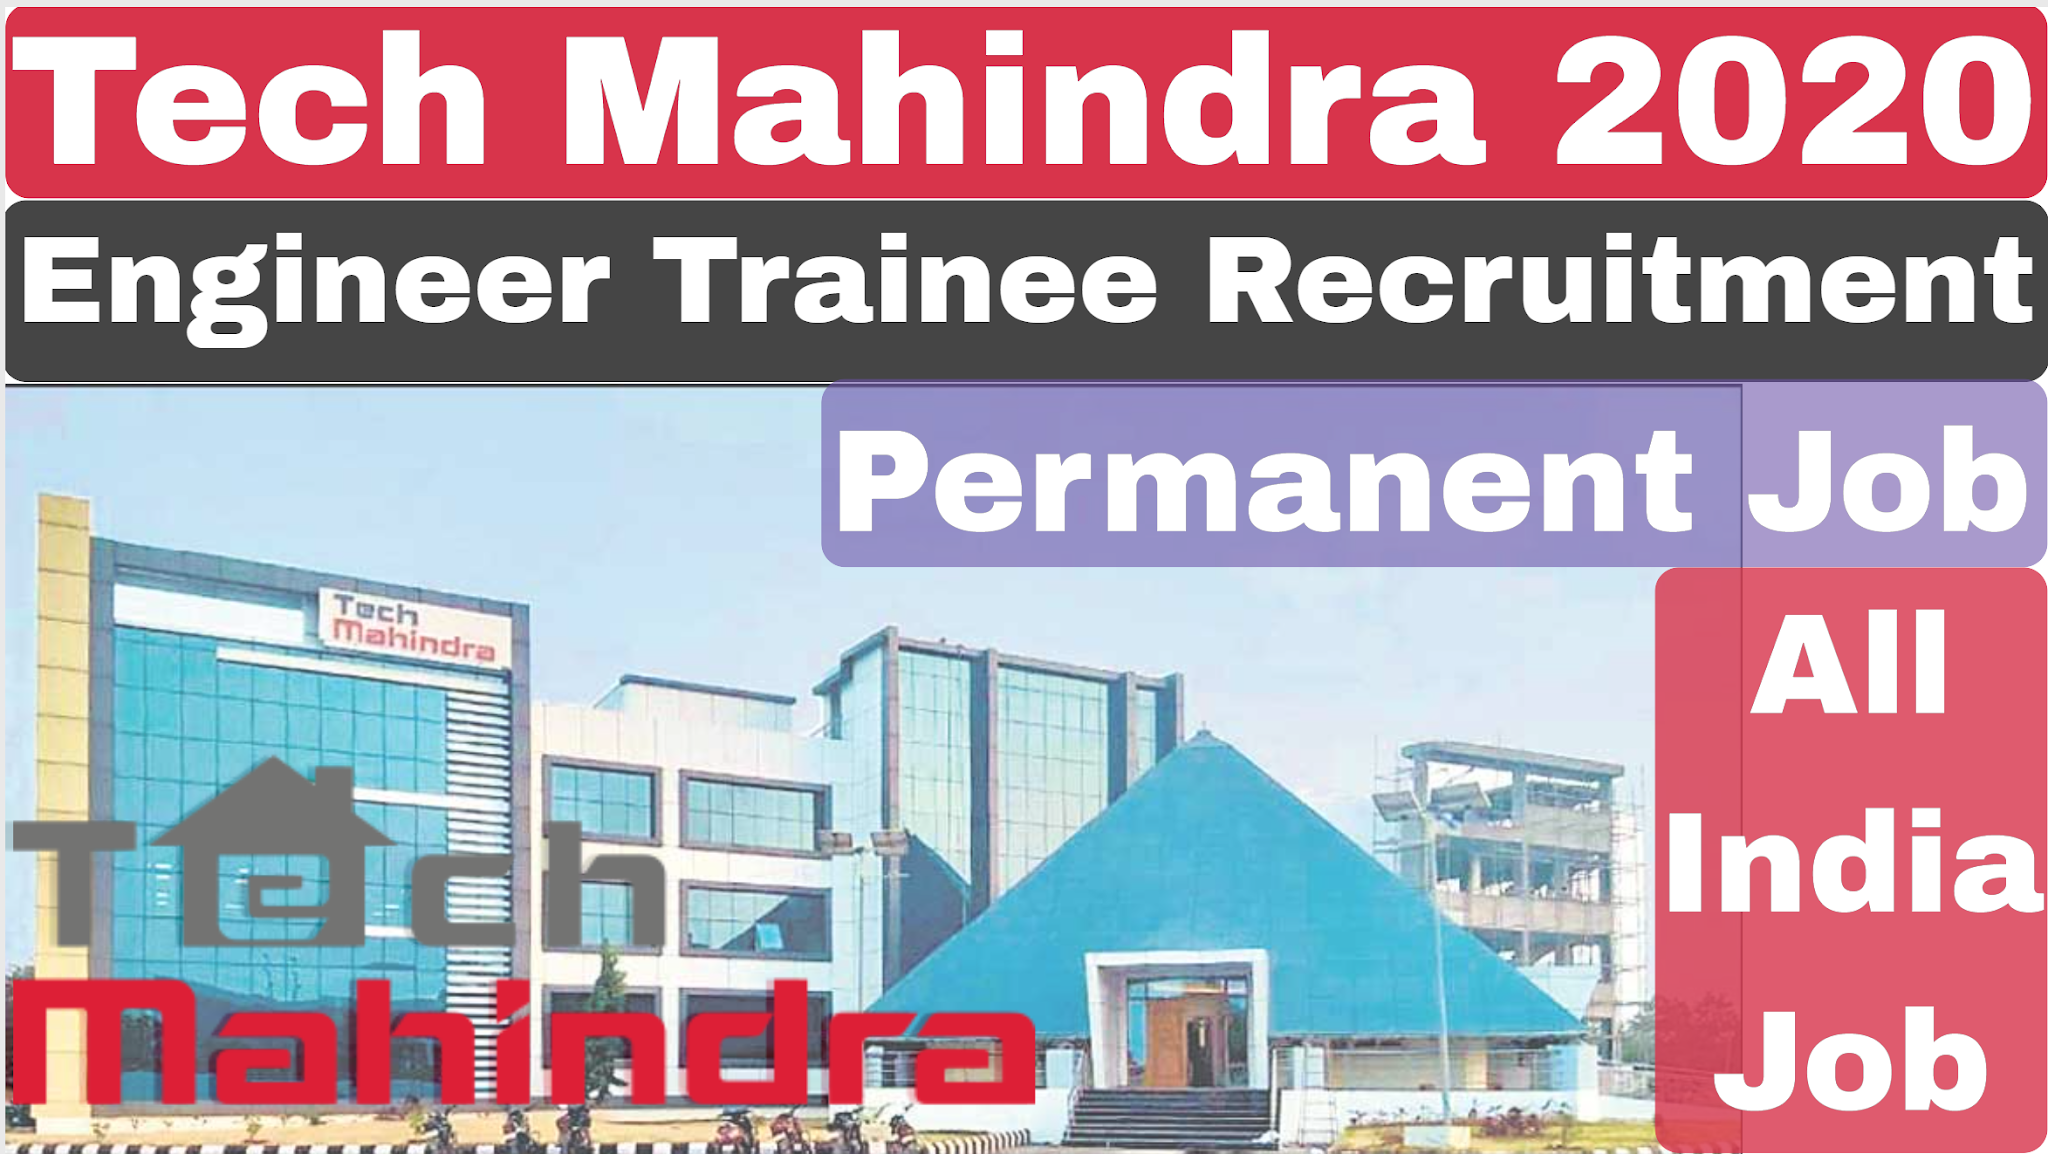 Tech Mahindra Engineer Trainee 2020 All Branch Freshers Private Job Technical Department